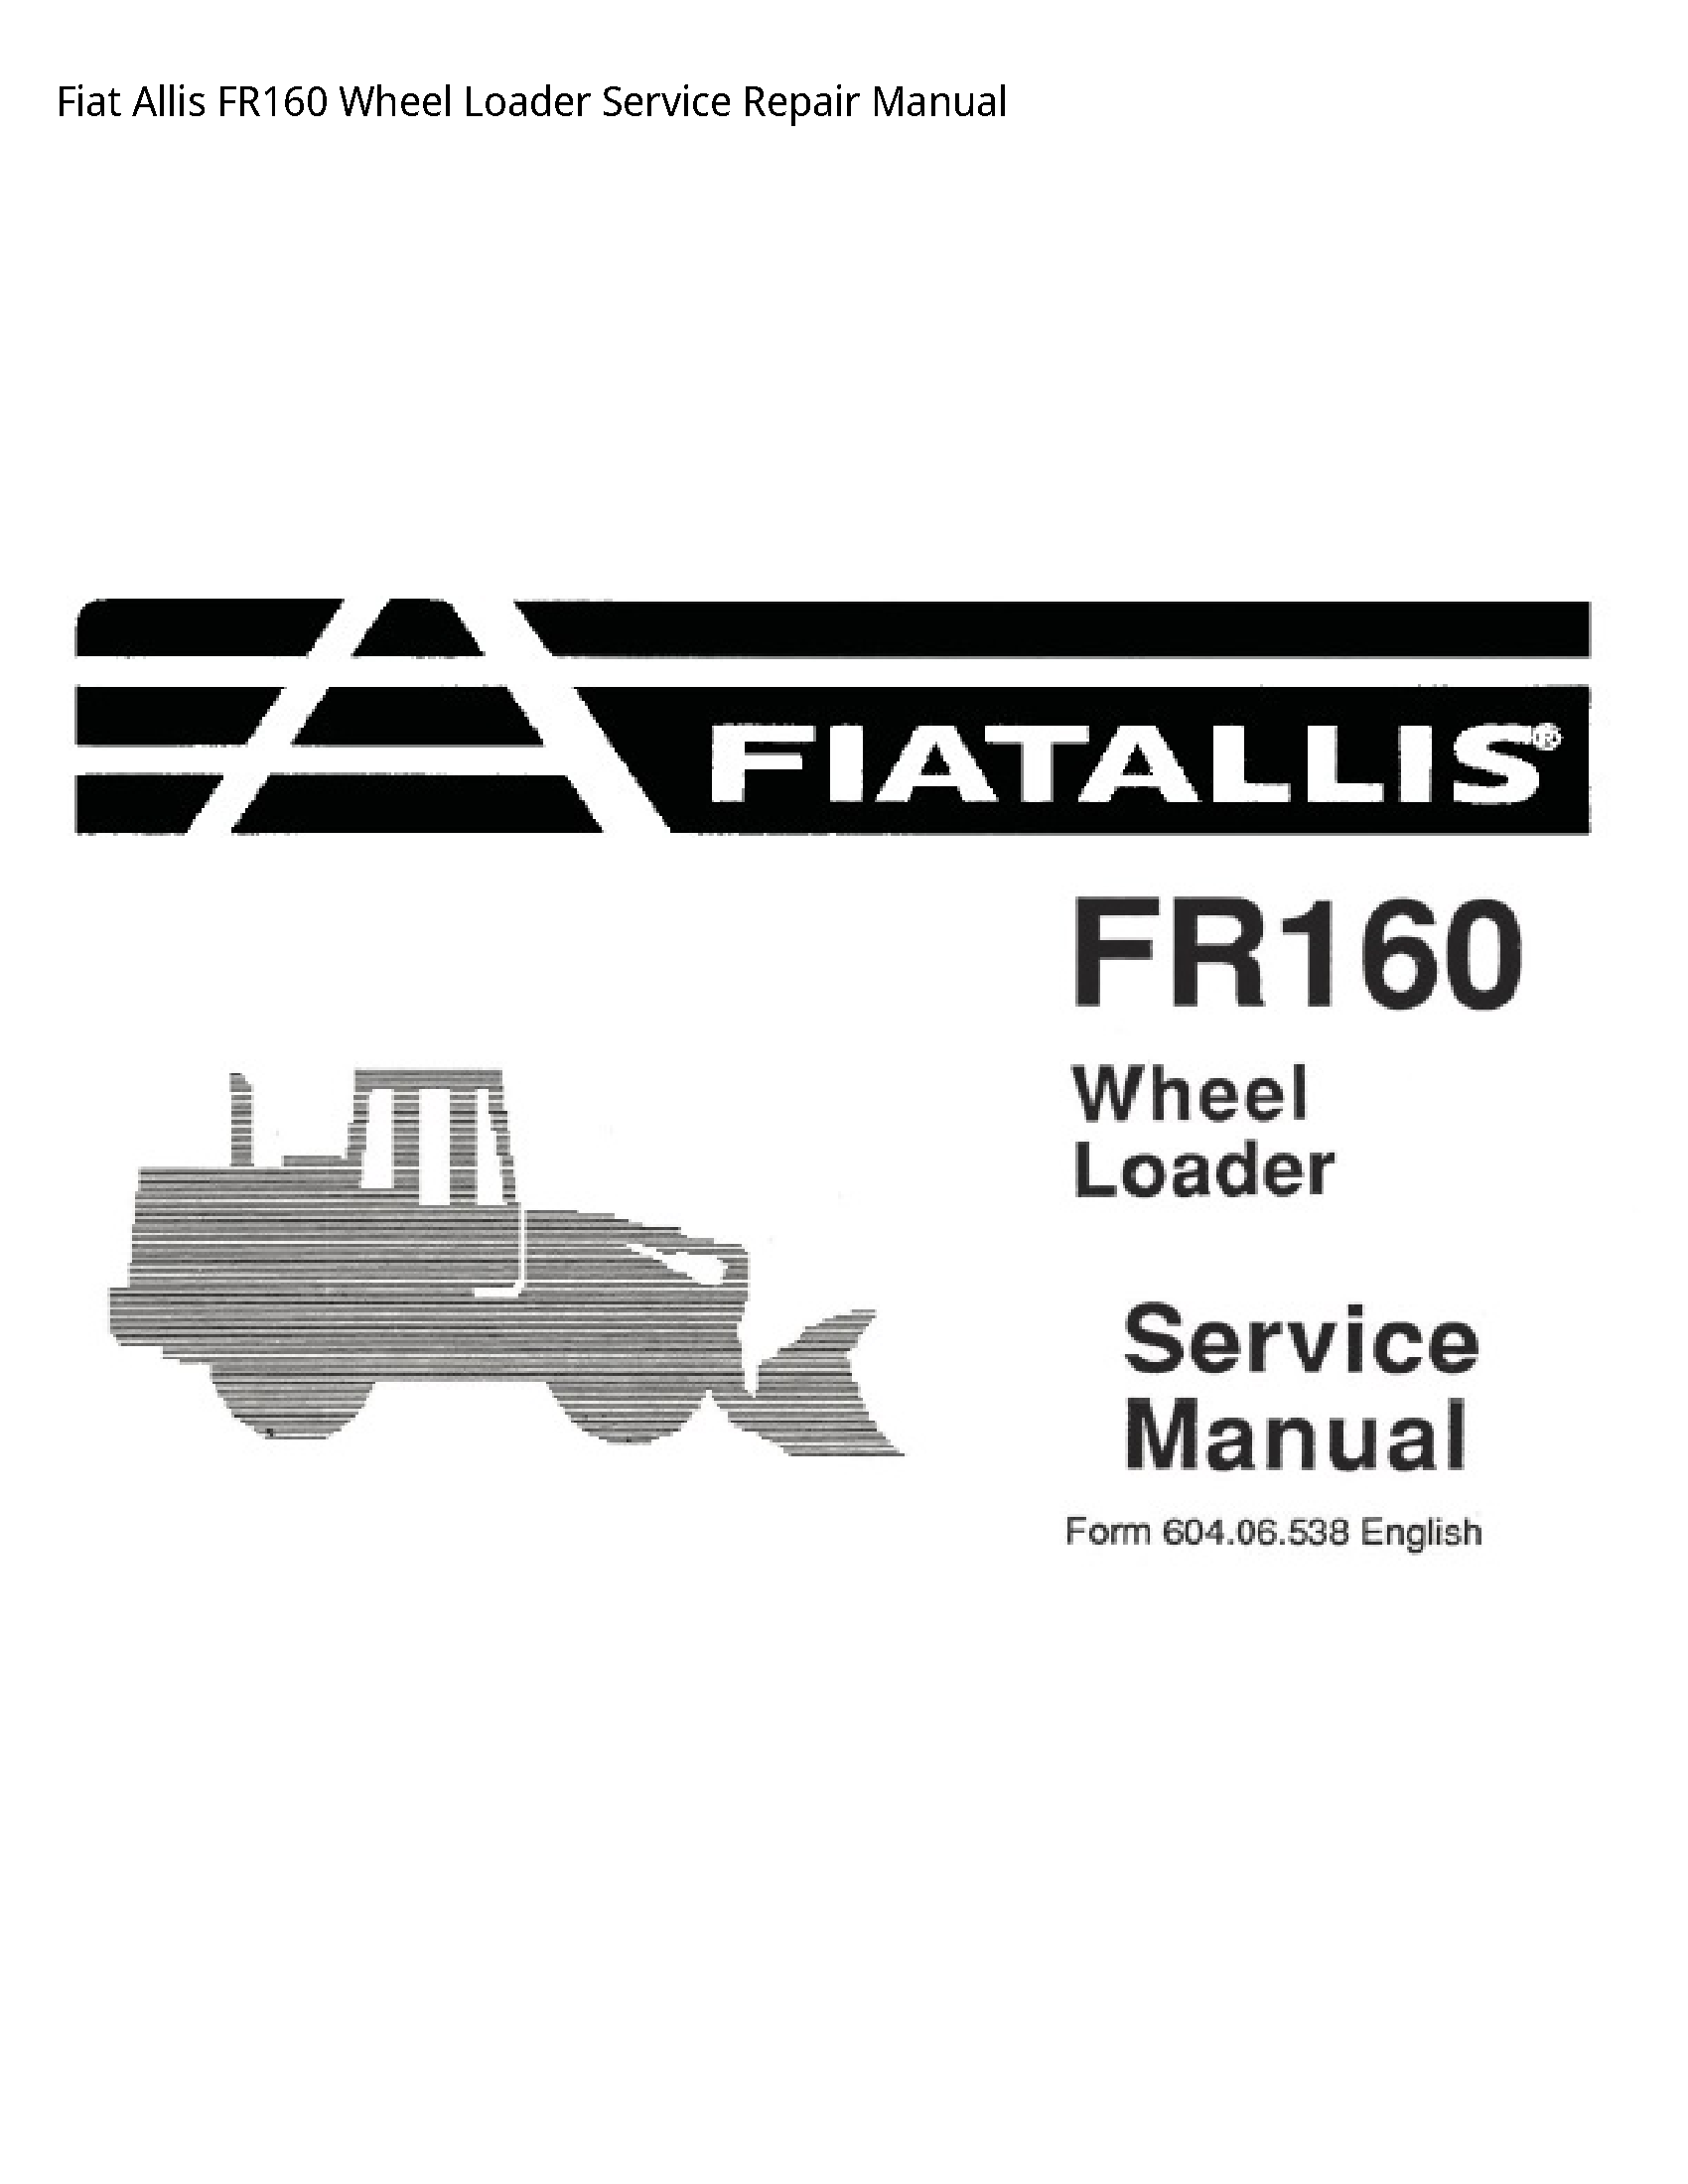 Fiat Allis FR160 Wheel Loader manual